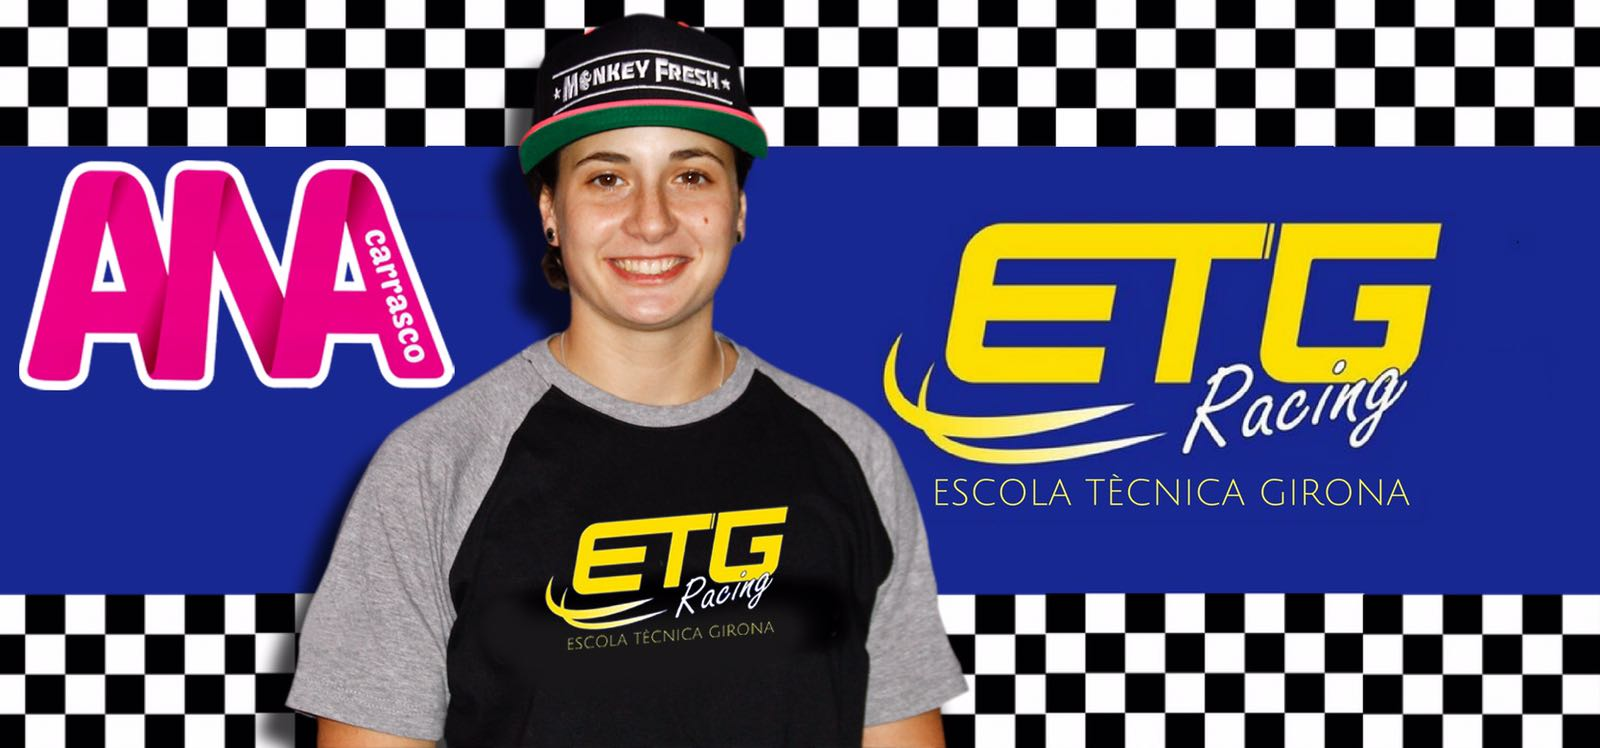 ANA CARRASCO correra con ETG Racing